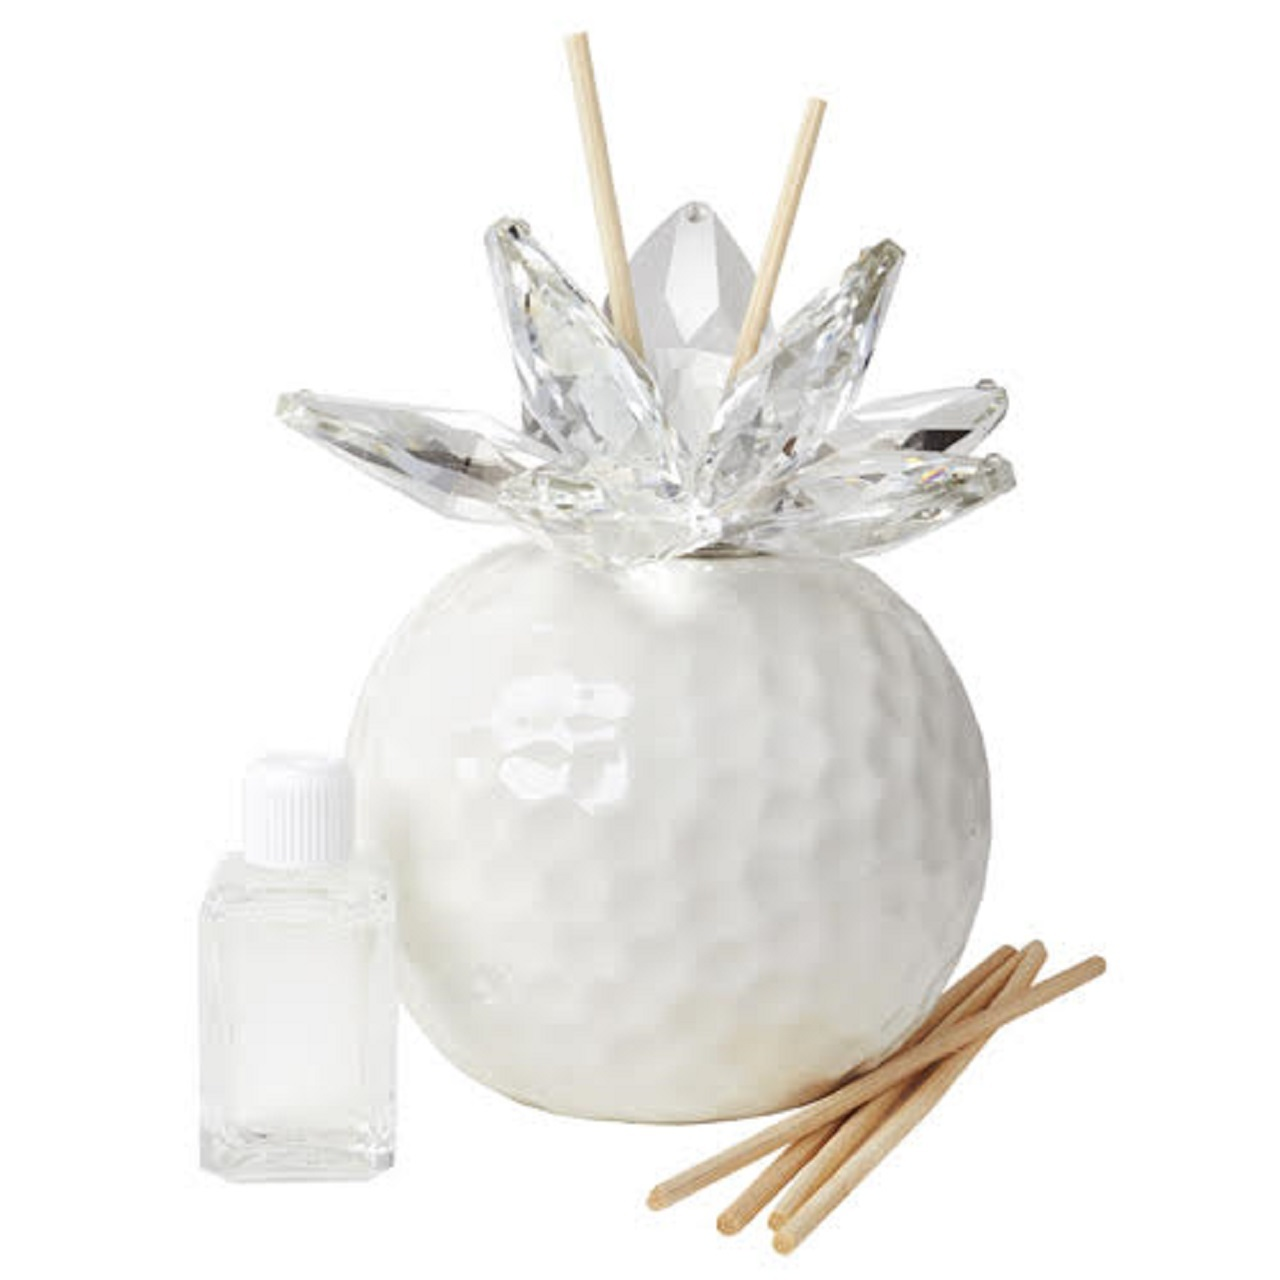 decorative_hammered_white_aroma_diffuser_33131w__00587.1505329852.jpg